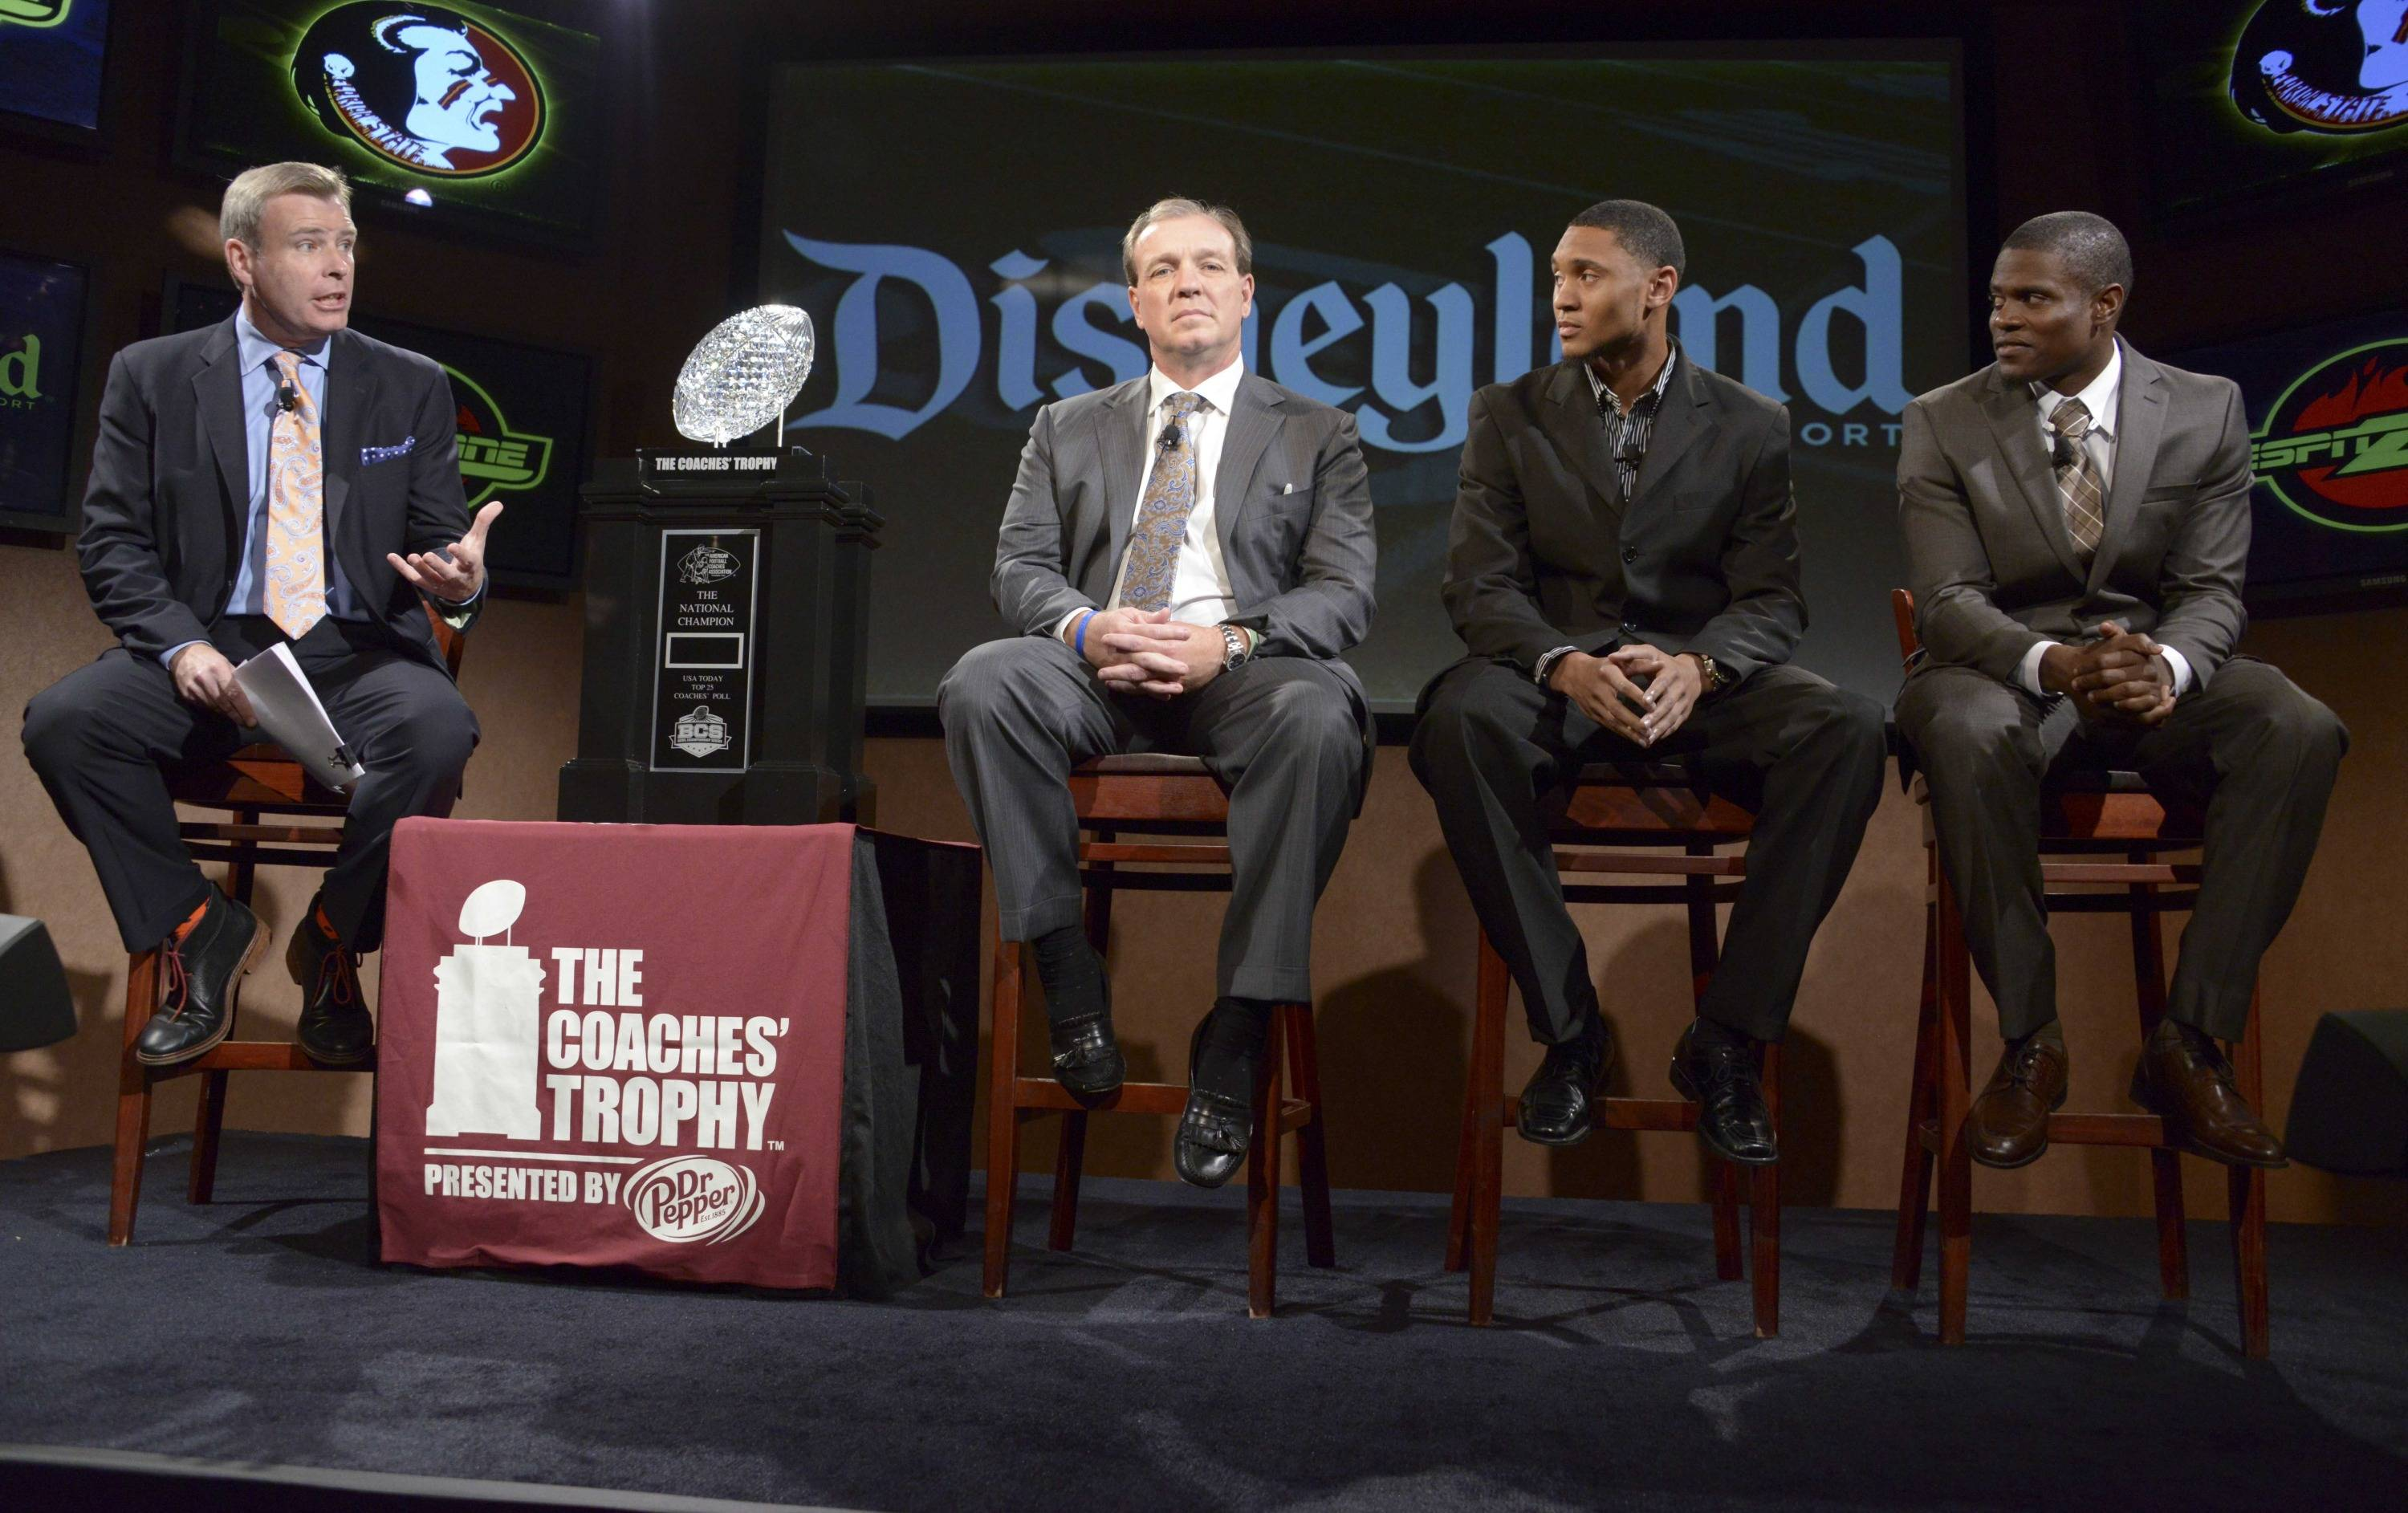 ESPN broadcaster Tom Rinaldi (left) interviews Florida State Seminoles coach Jimbo Fisher (second from left) and receiver Rashad Greene (second from right) and defensive back Lamarcus Joyner at a press conference for the 2014 BCS National Championship at ESPN Zone Downtown Disney. Mandatory Credit: Kirby Lee-USA TODAY Sports